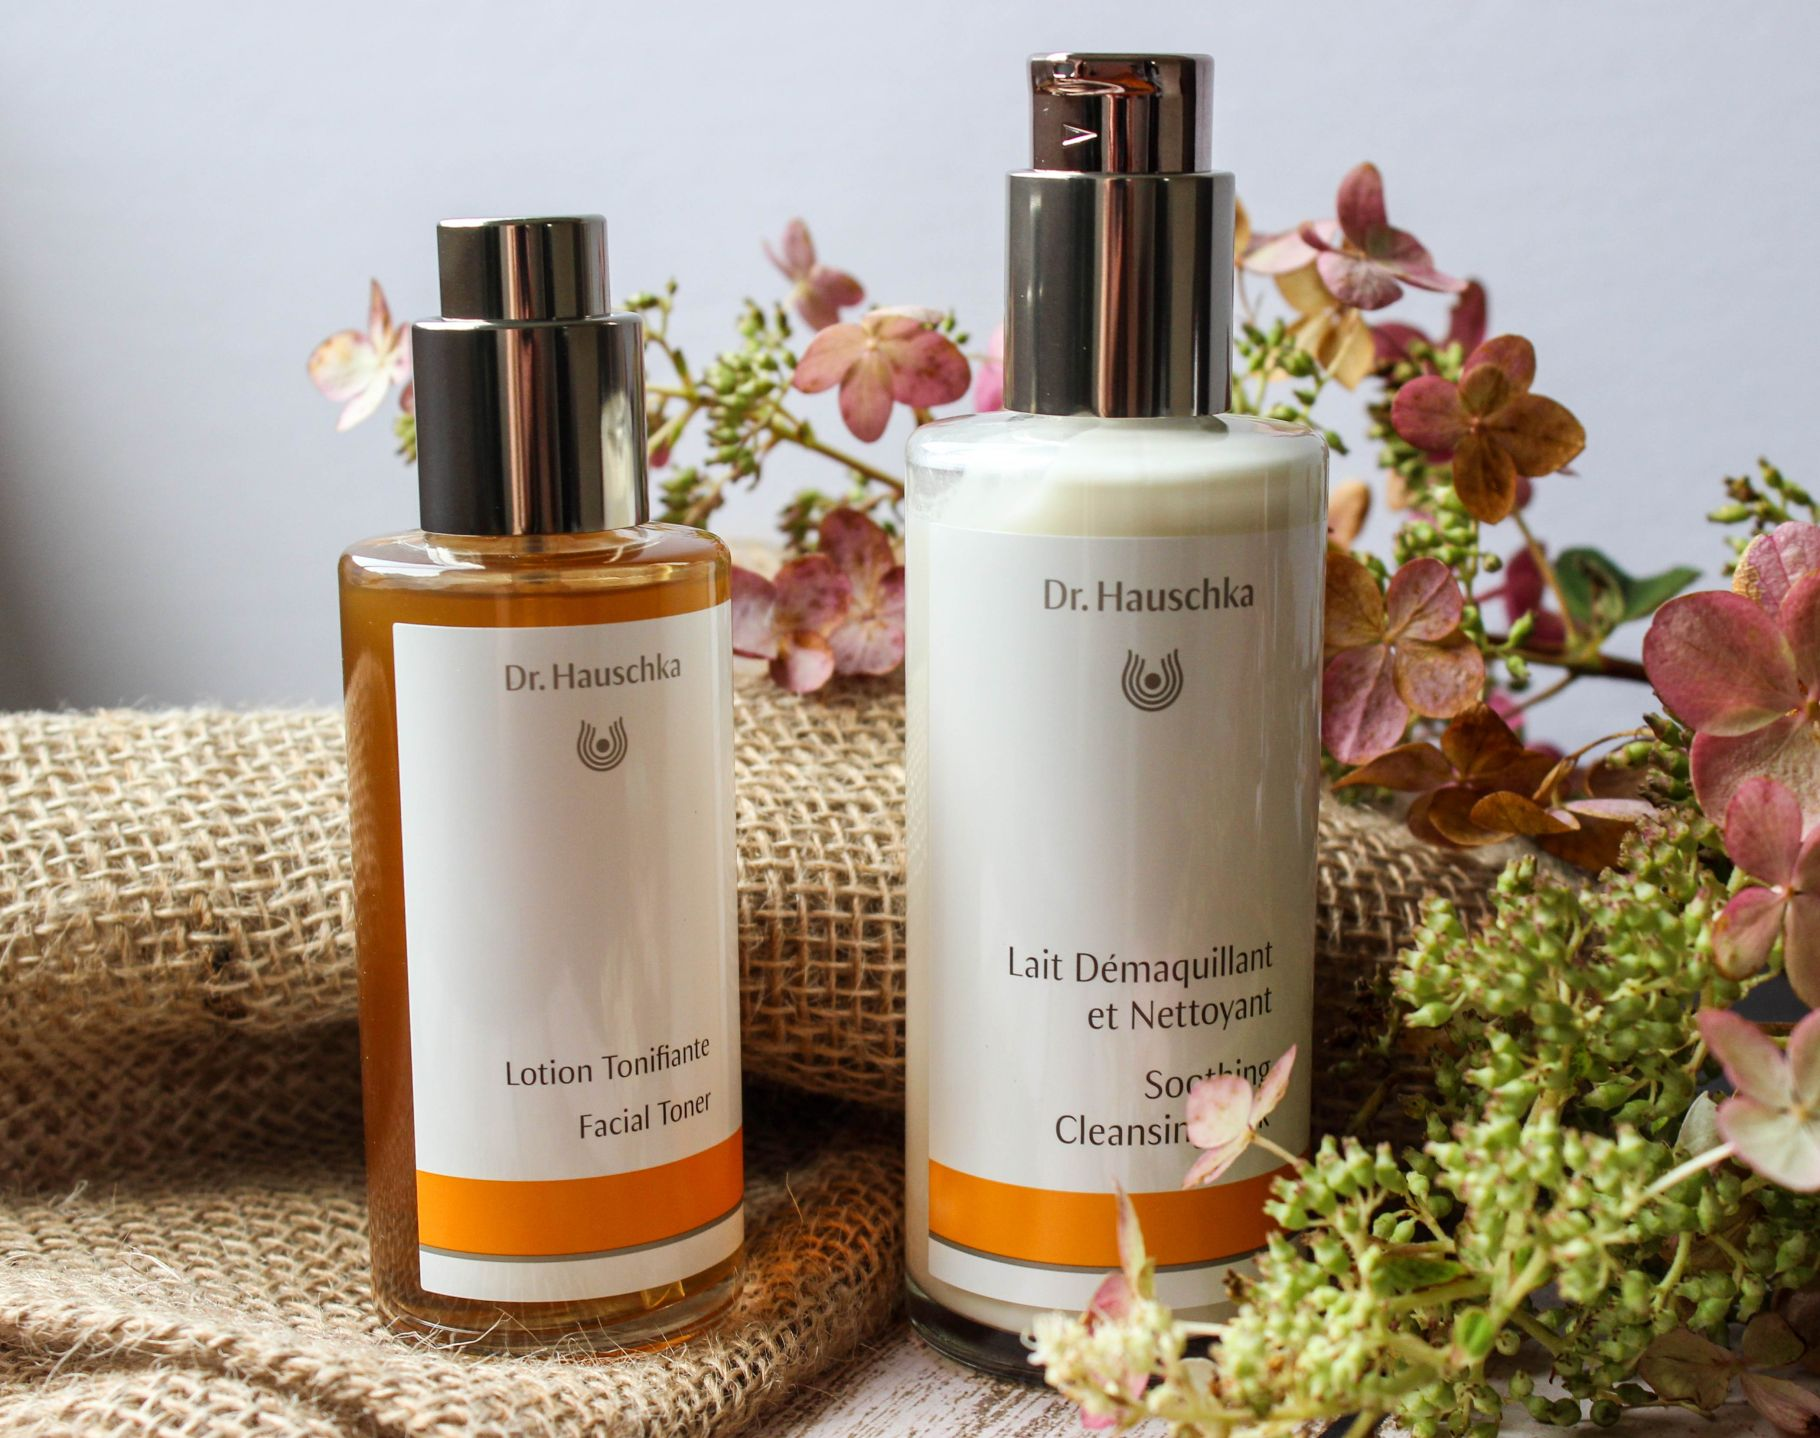 dr. hauschka toner and cleansing lotion